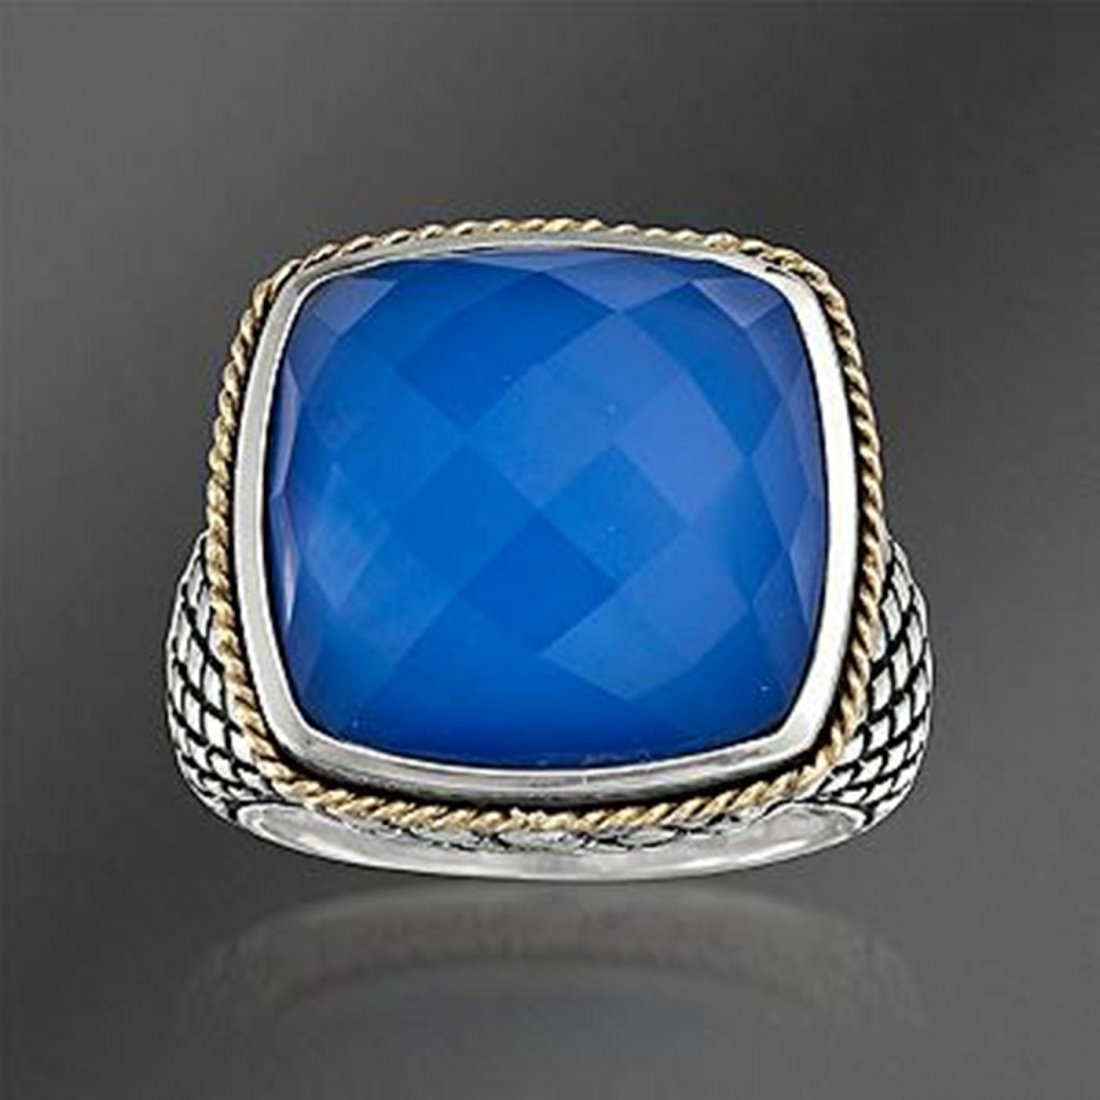 Andrea Candela Blue Agate Doublet Ring With Quartz in